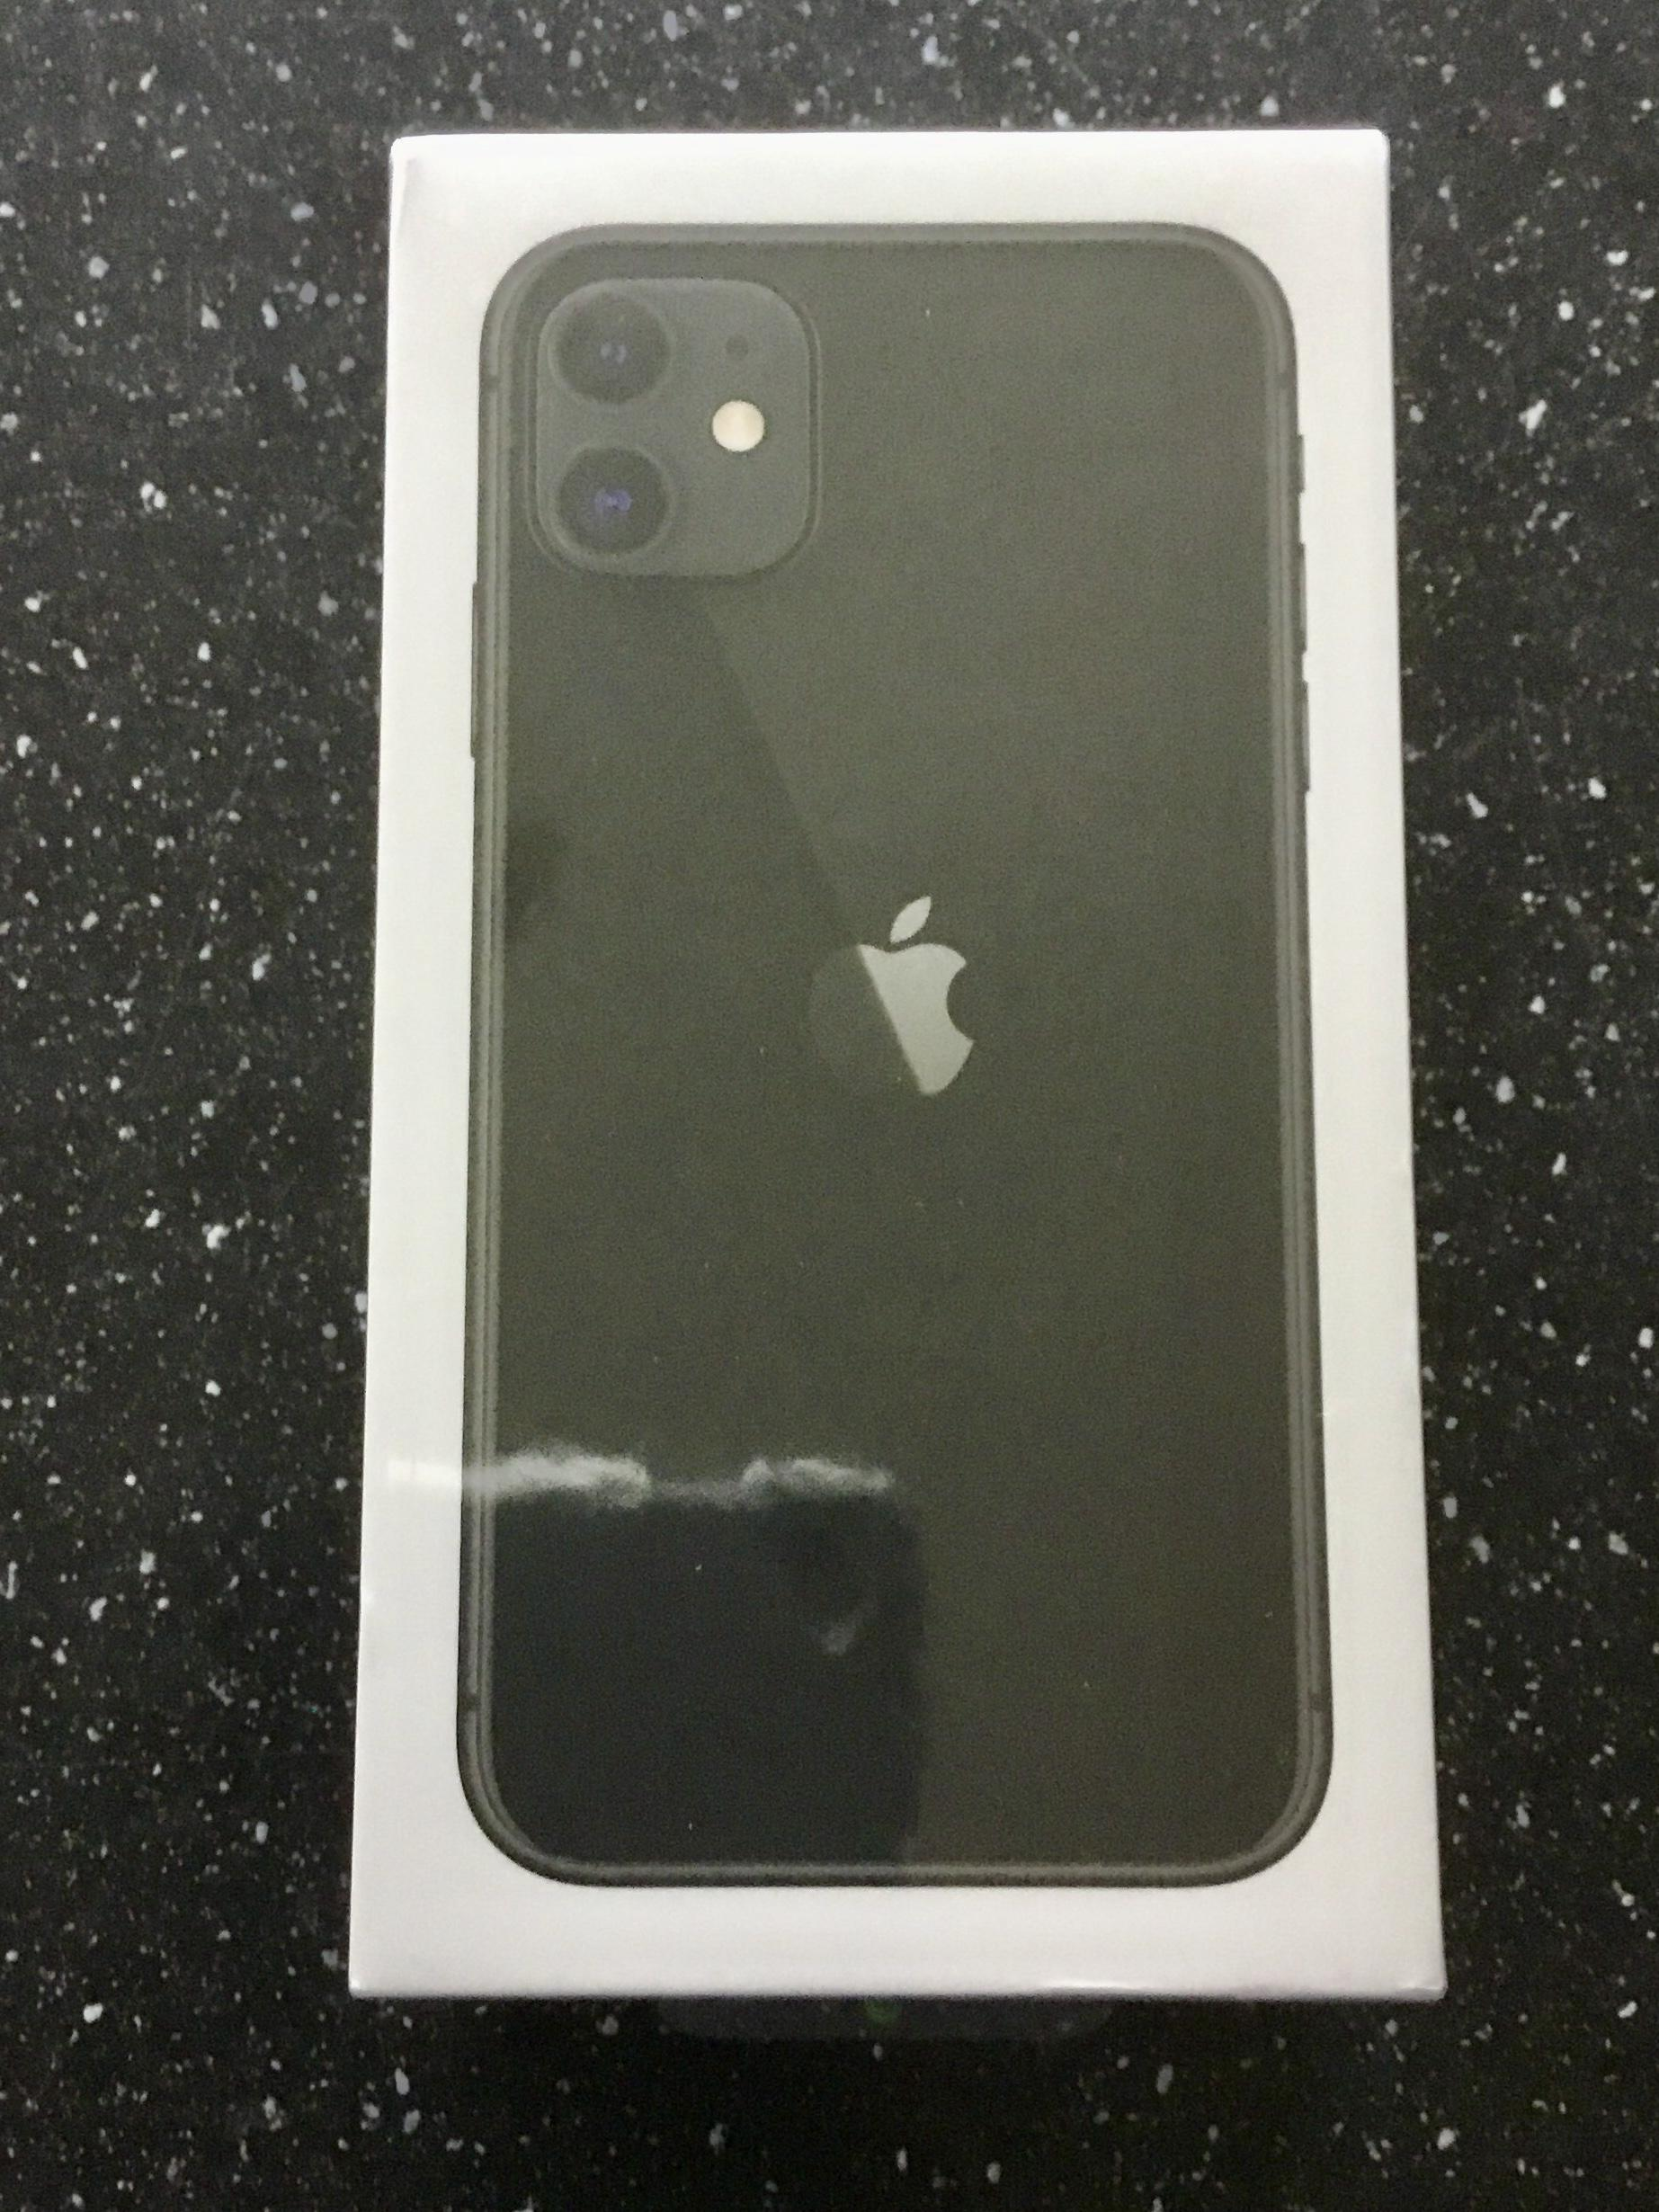 IPhone gb, brand new, sealed